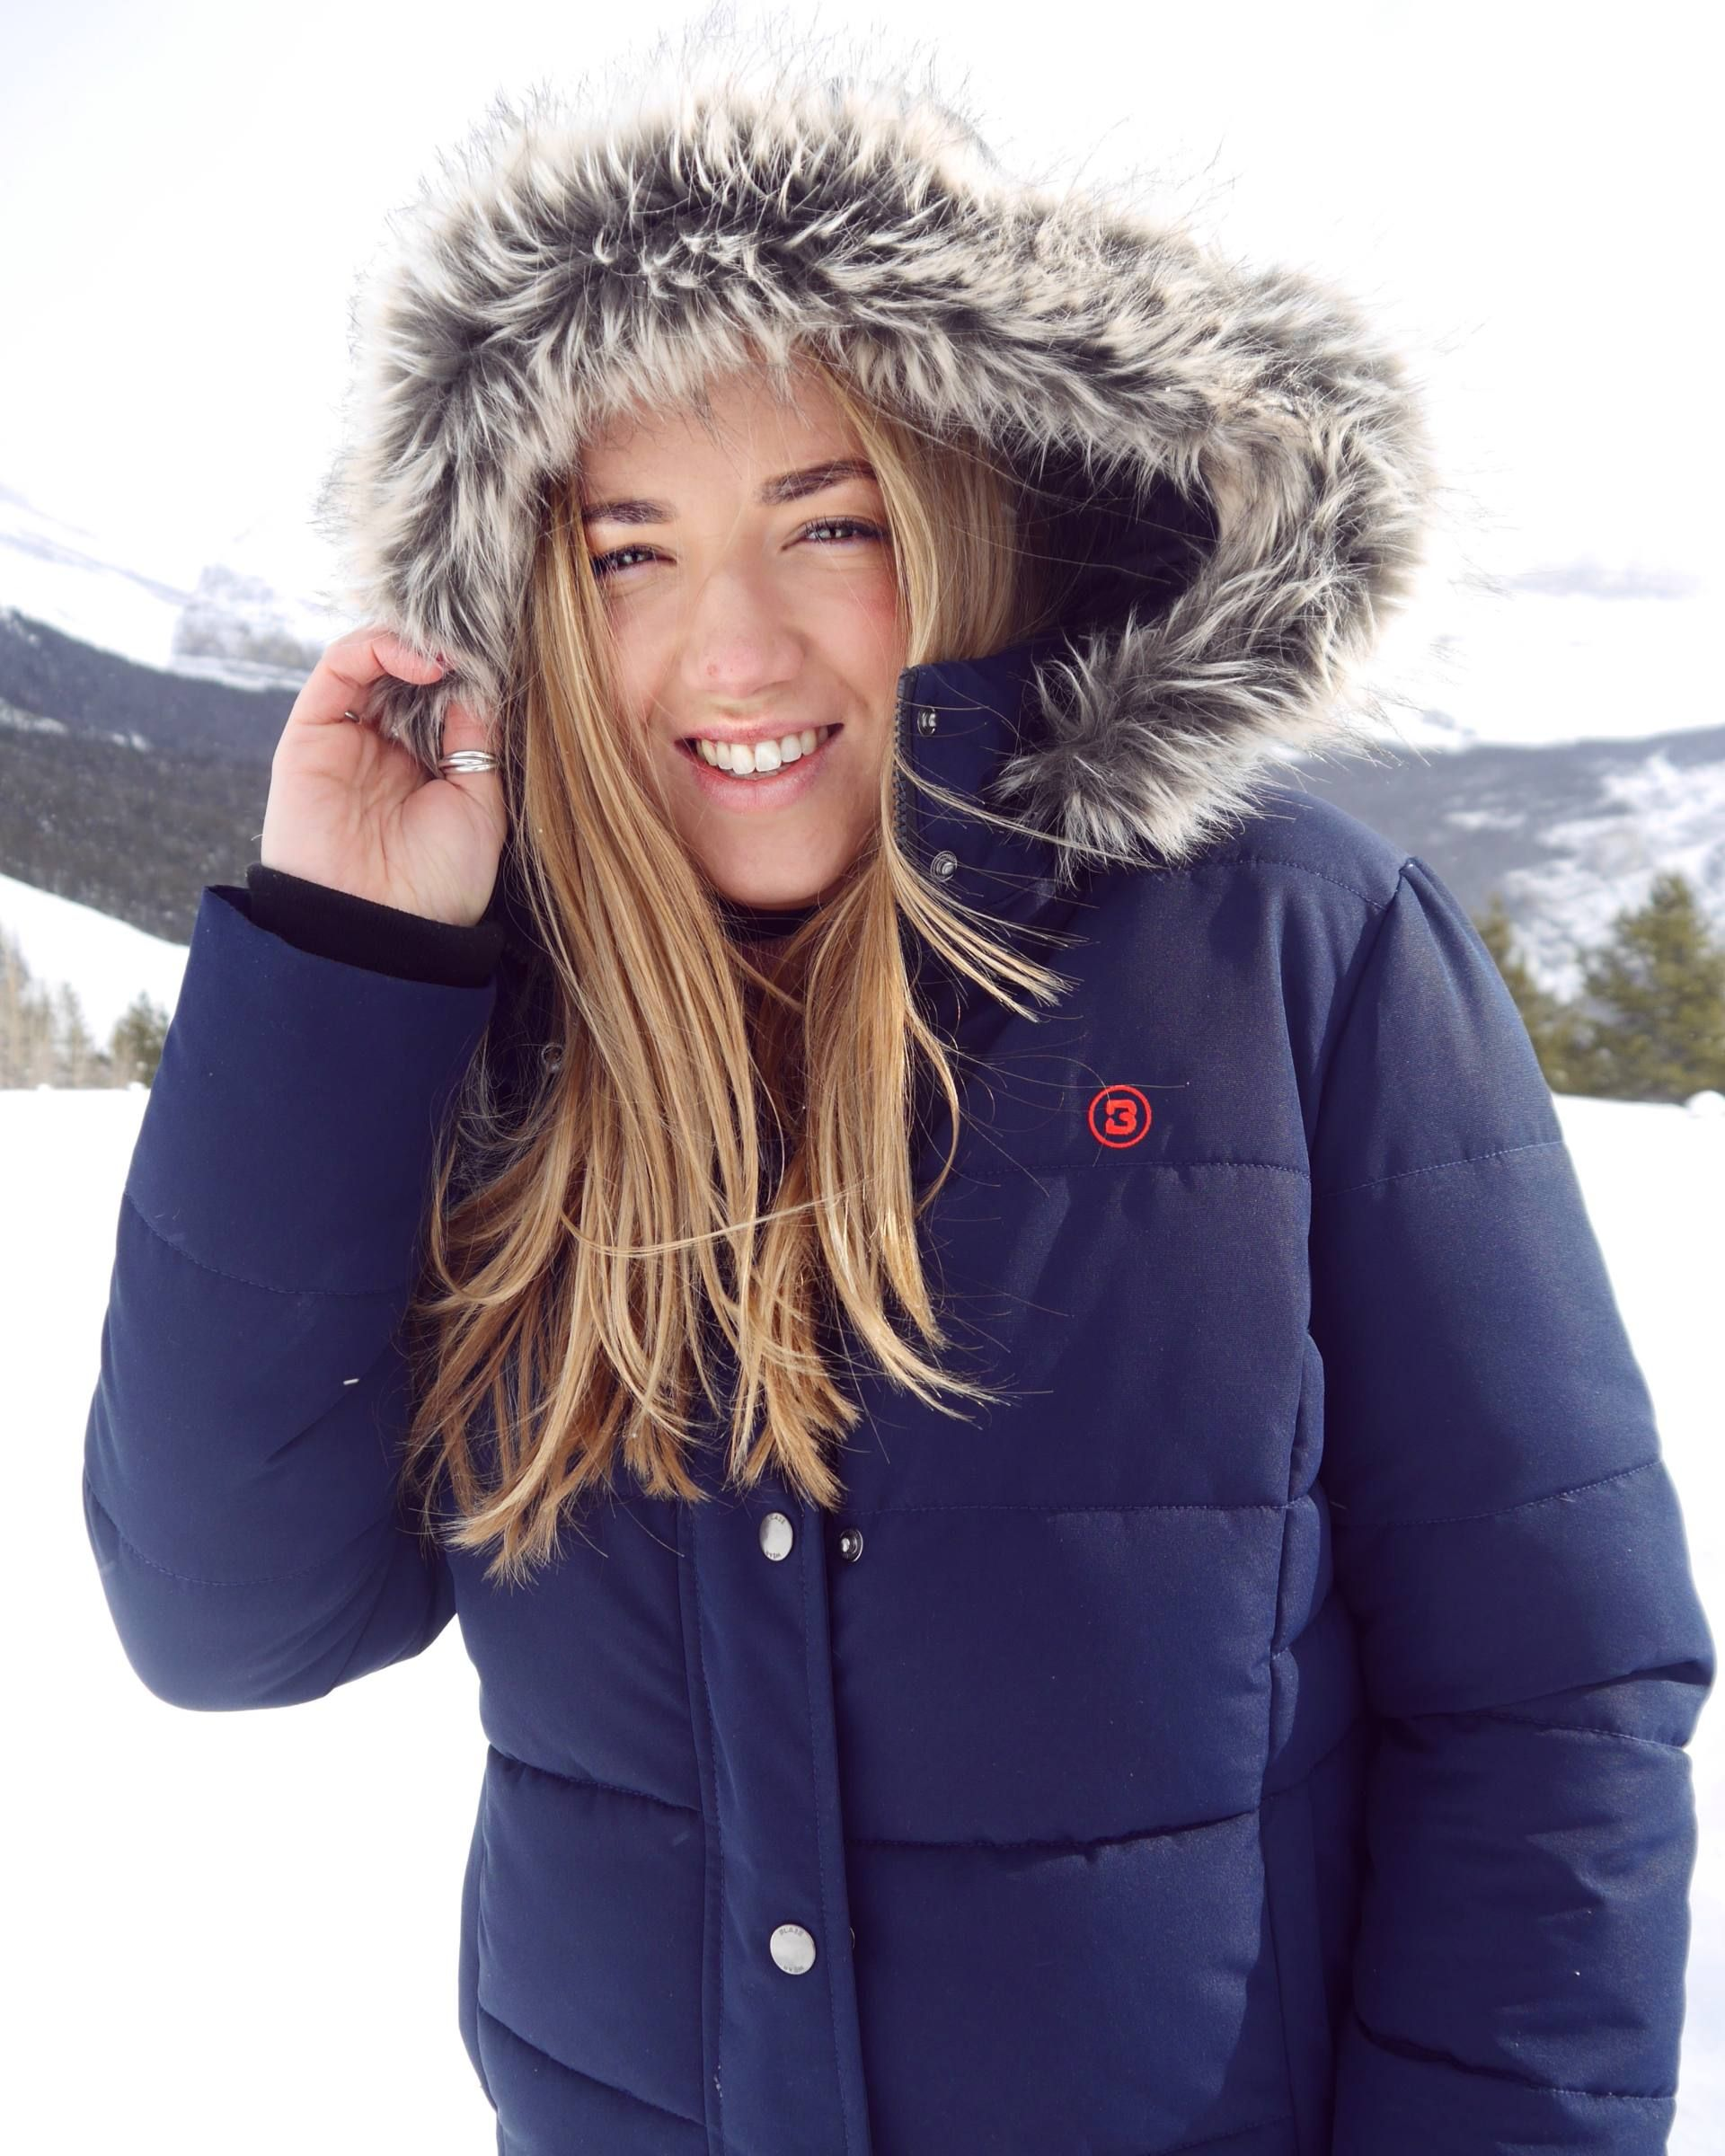 011705330ba A Canadian winter survival packing guide. What to wear when visiting ...